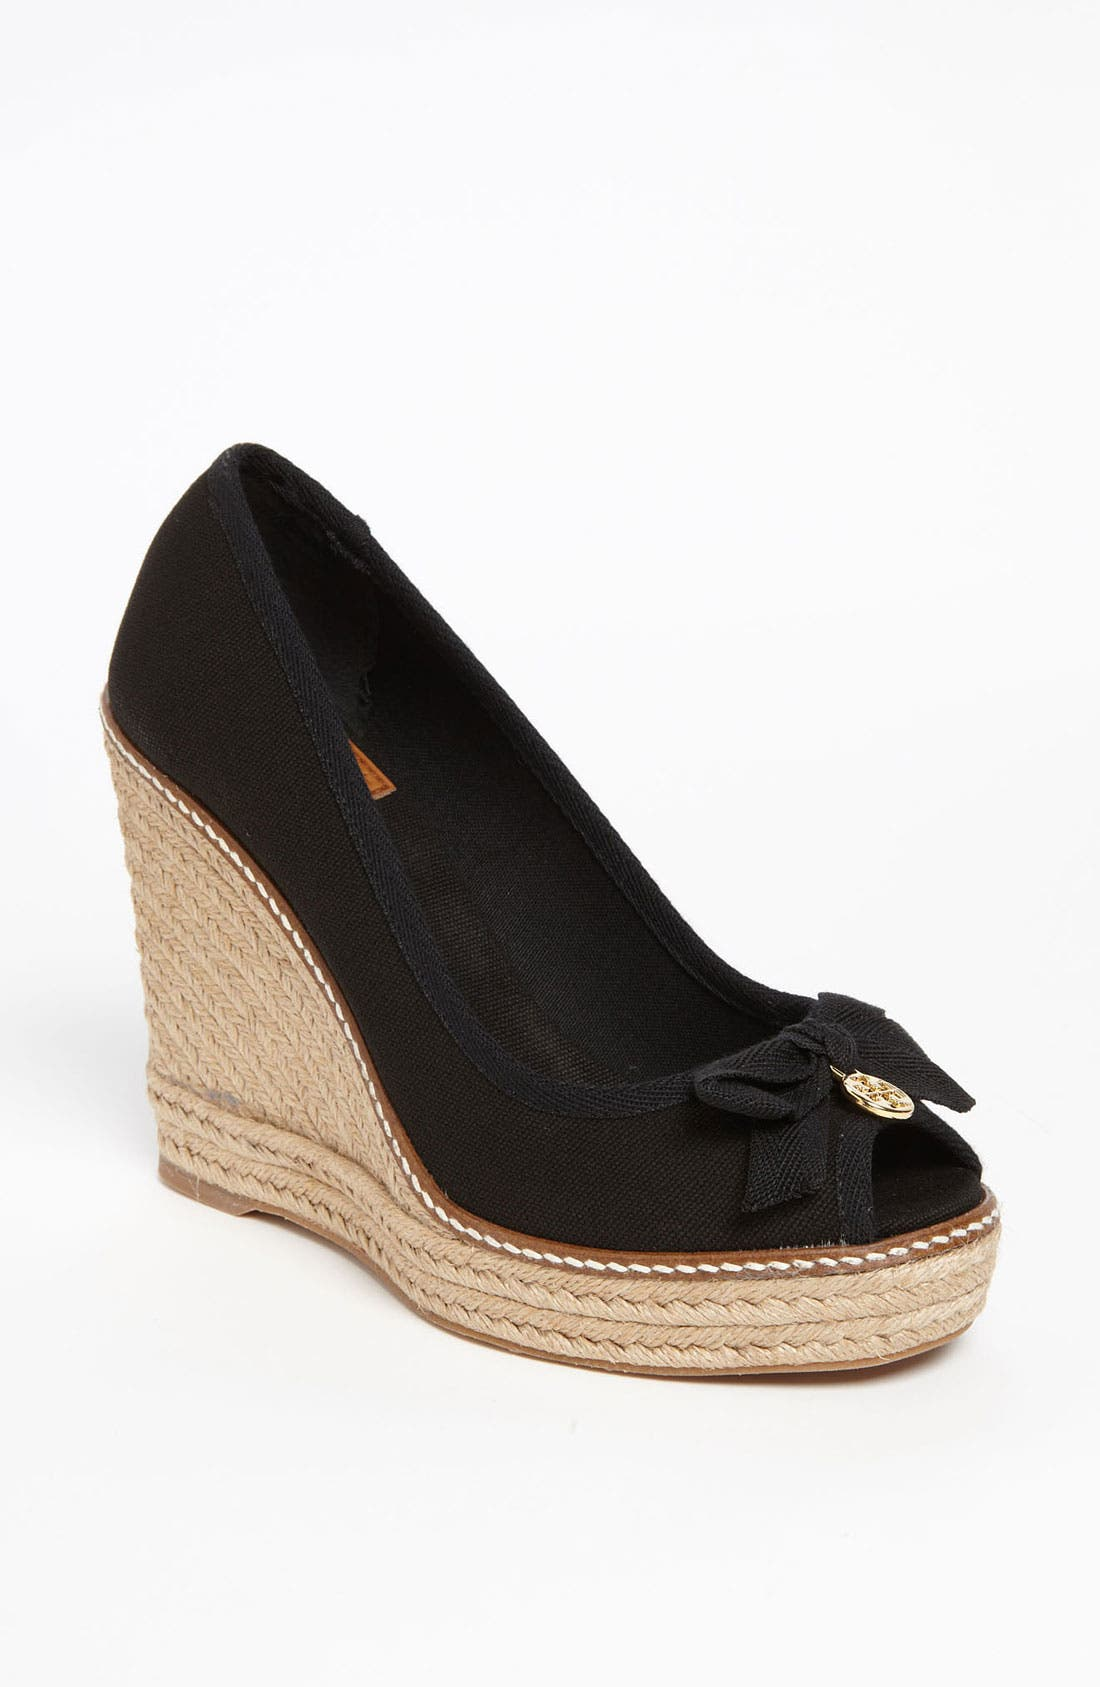 Main Image - Tory Burch 'Jackie' Wedge